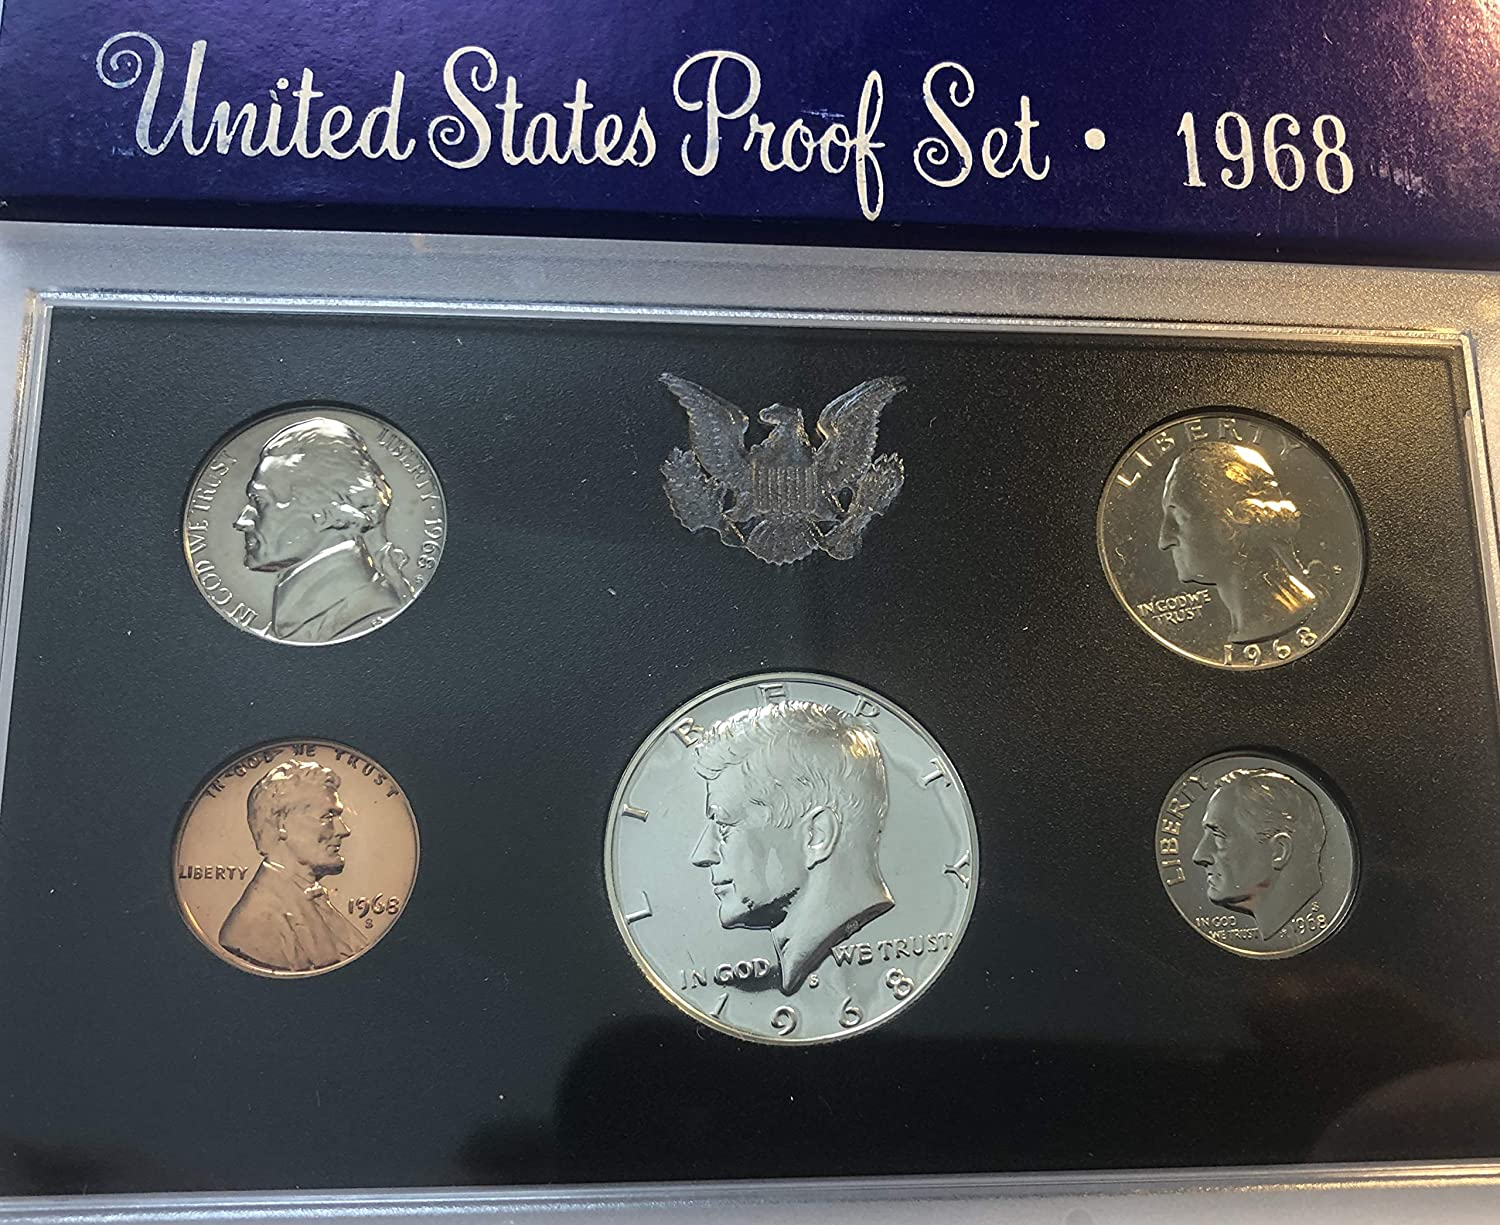 1968 P specialty shop 100% quality warranty US Proof Set Beautiful Comes in Original from the Packing